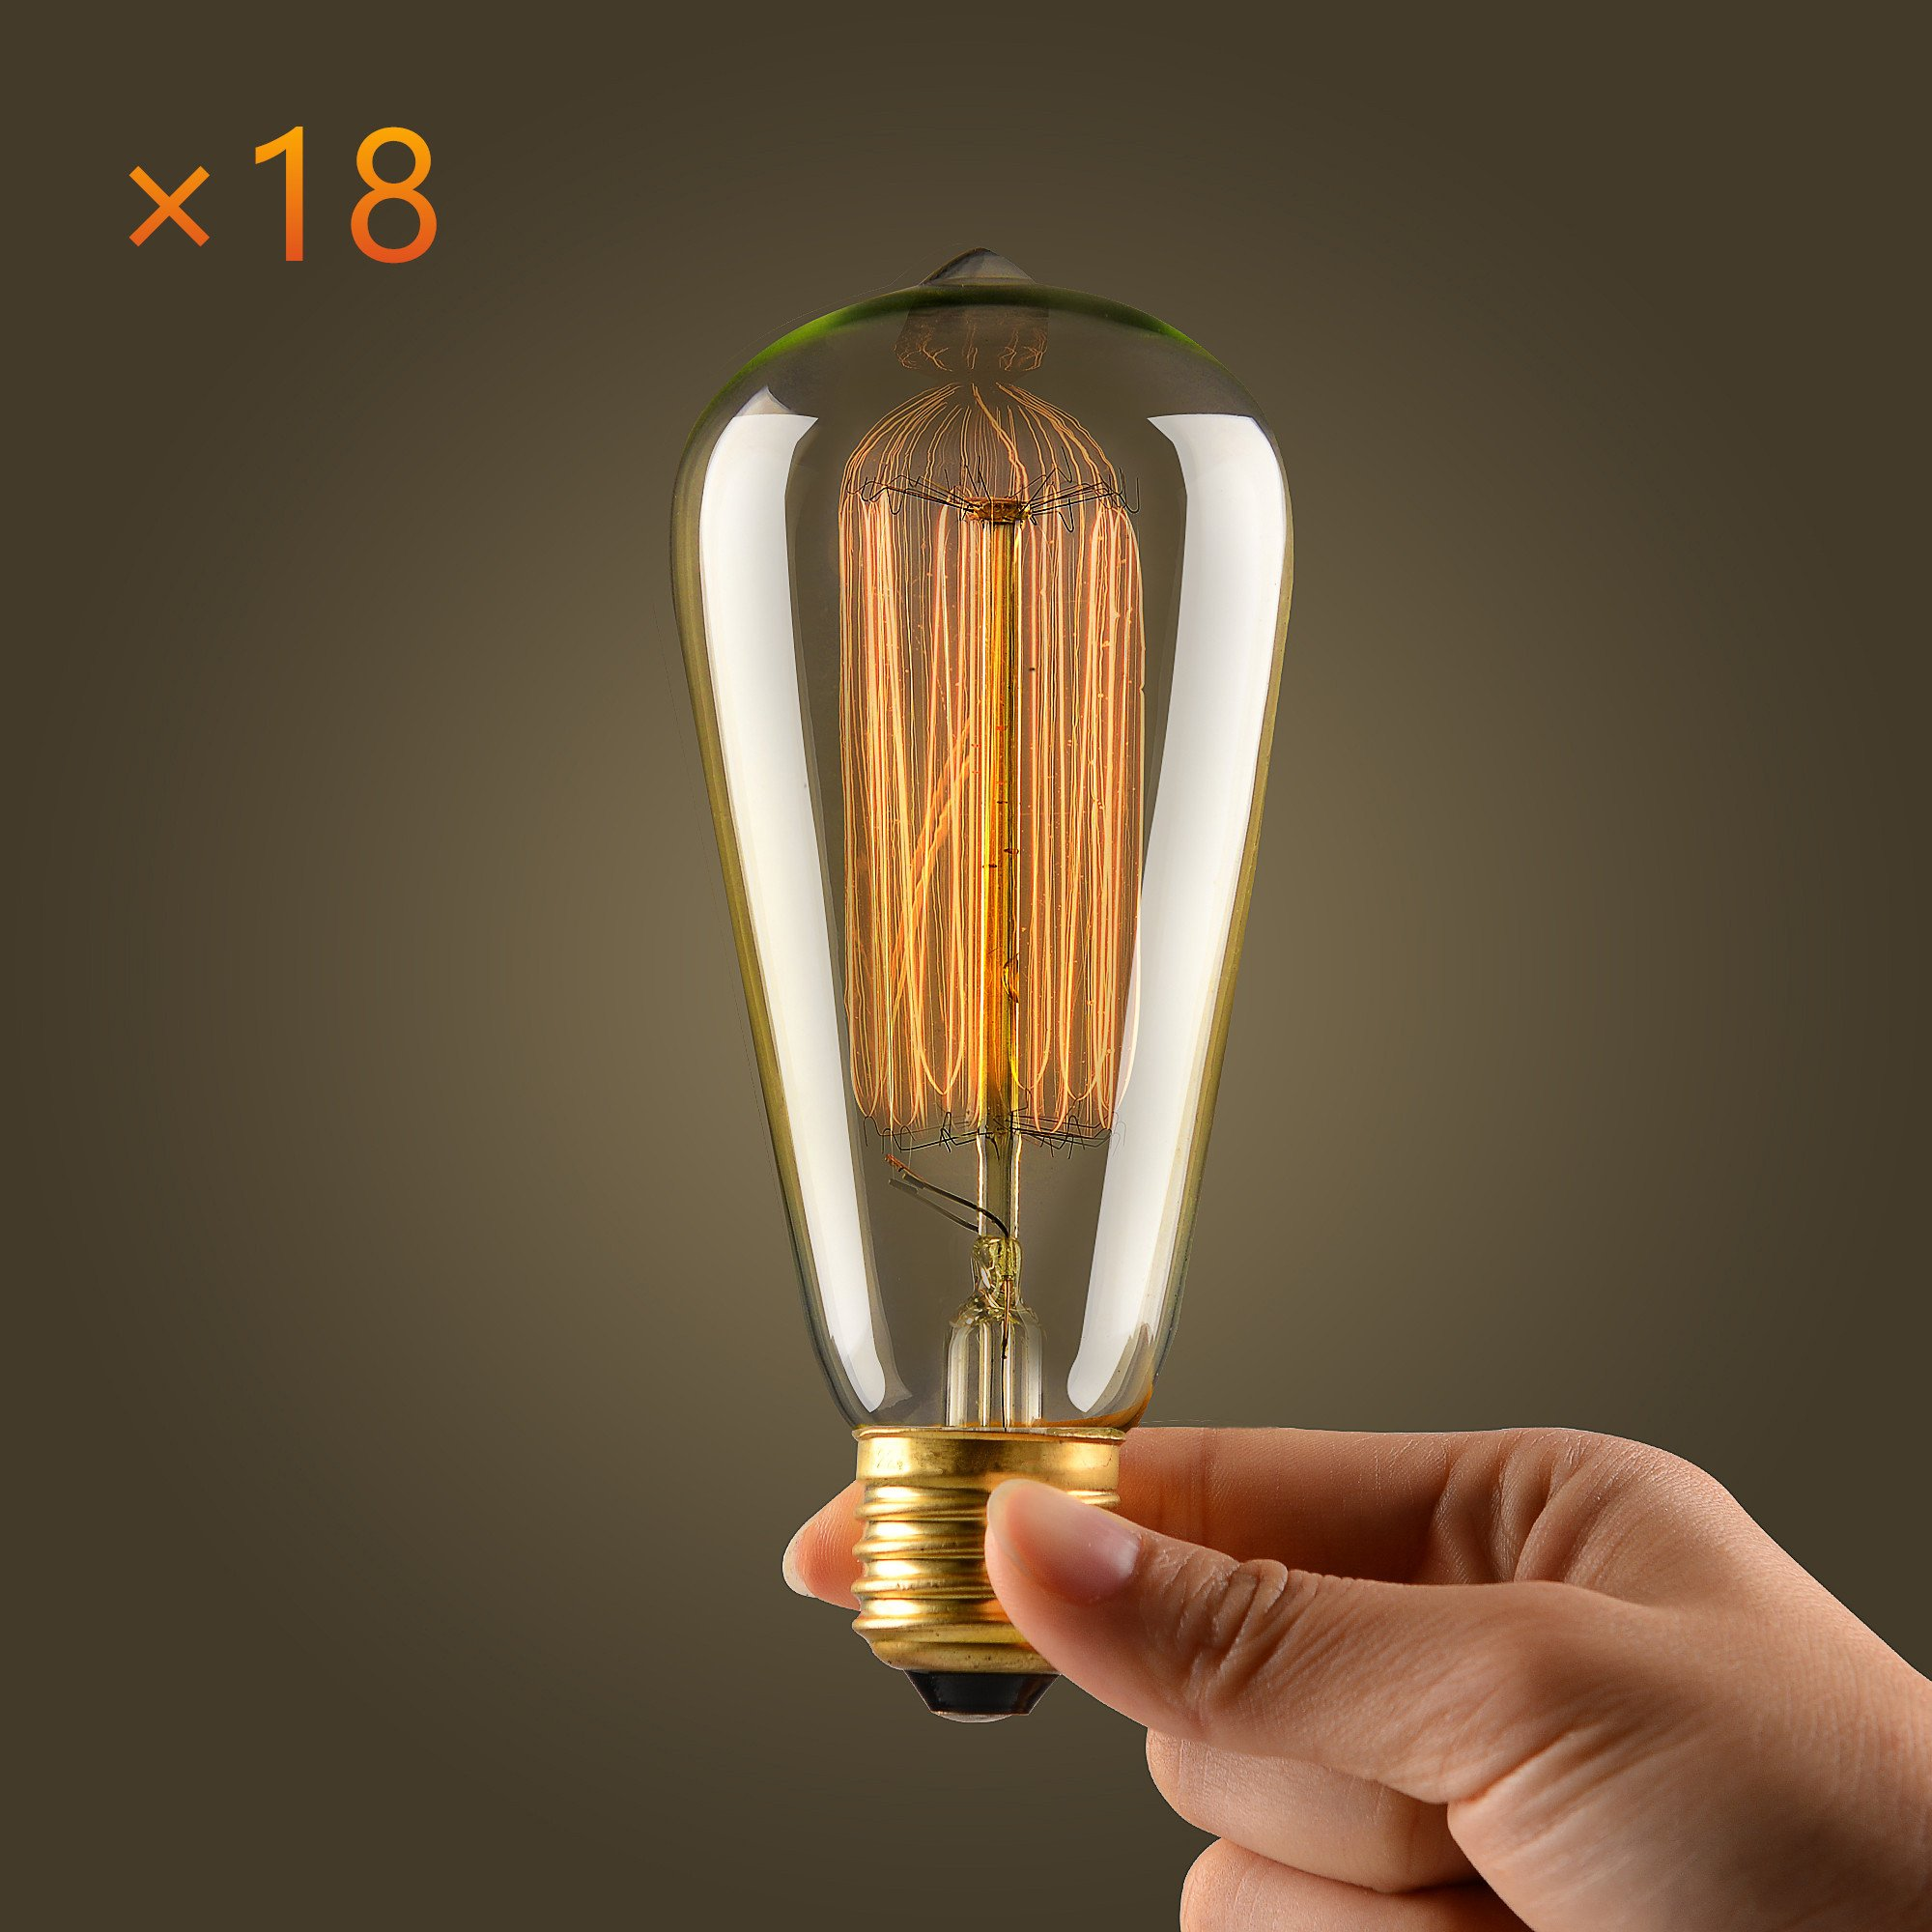 mirrea Vintage Edison Bulb - 18 Pack - ST64 - Squirrel Cage Filament - Dimmable by mirrea (Image #1)